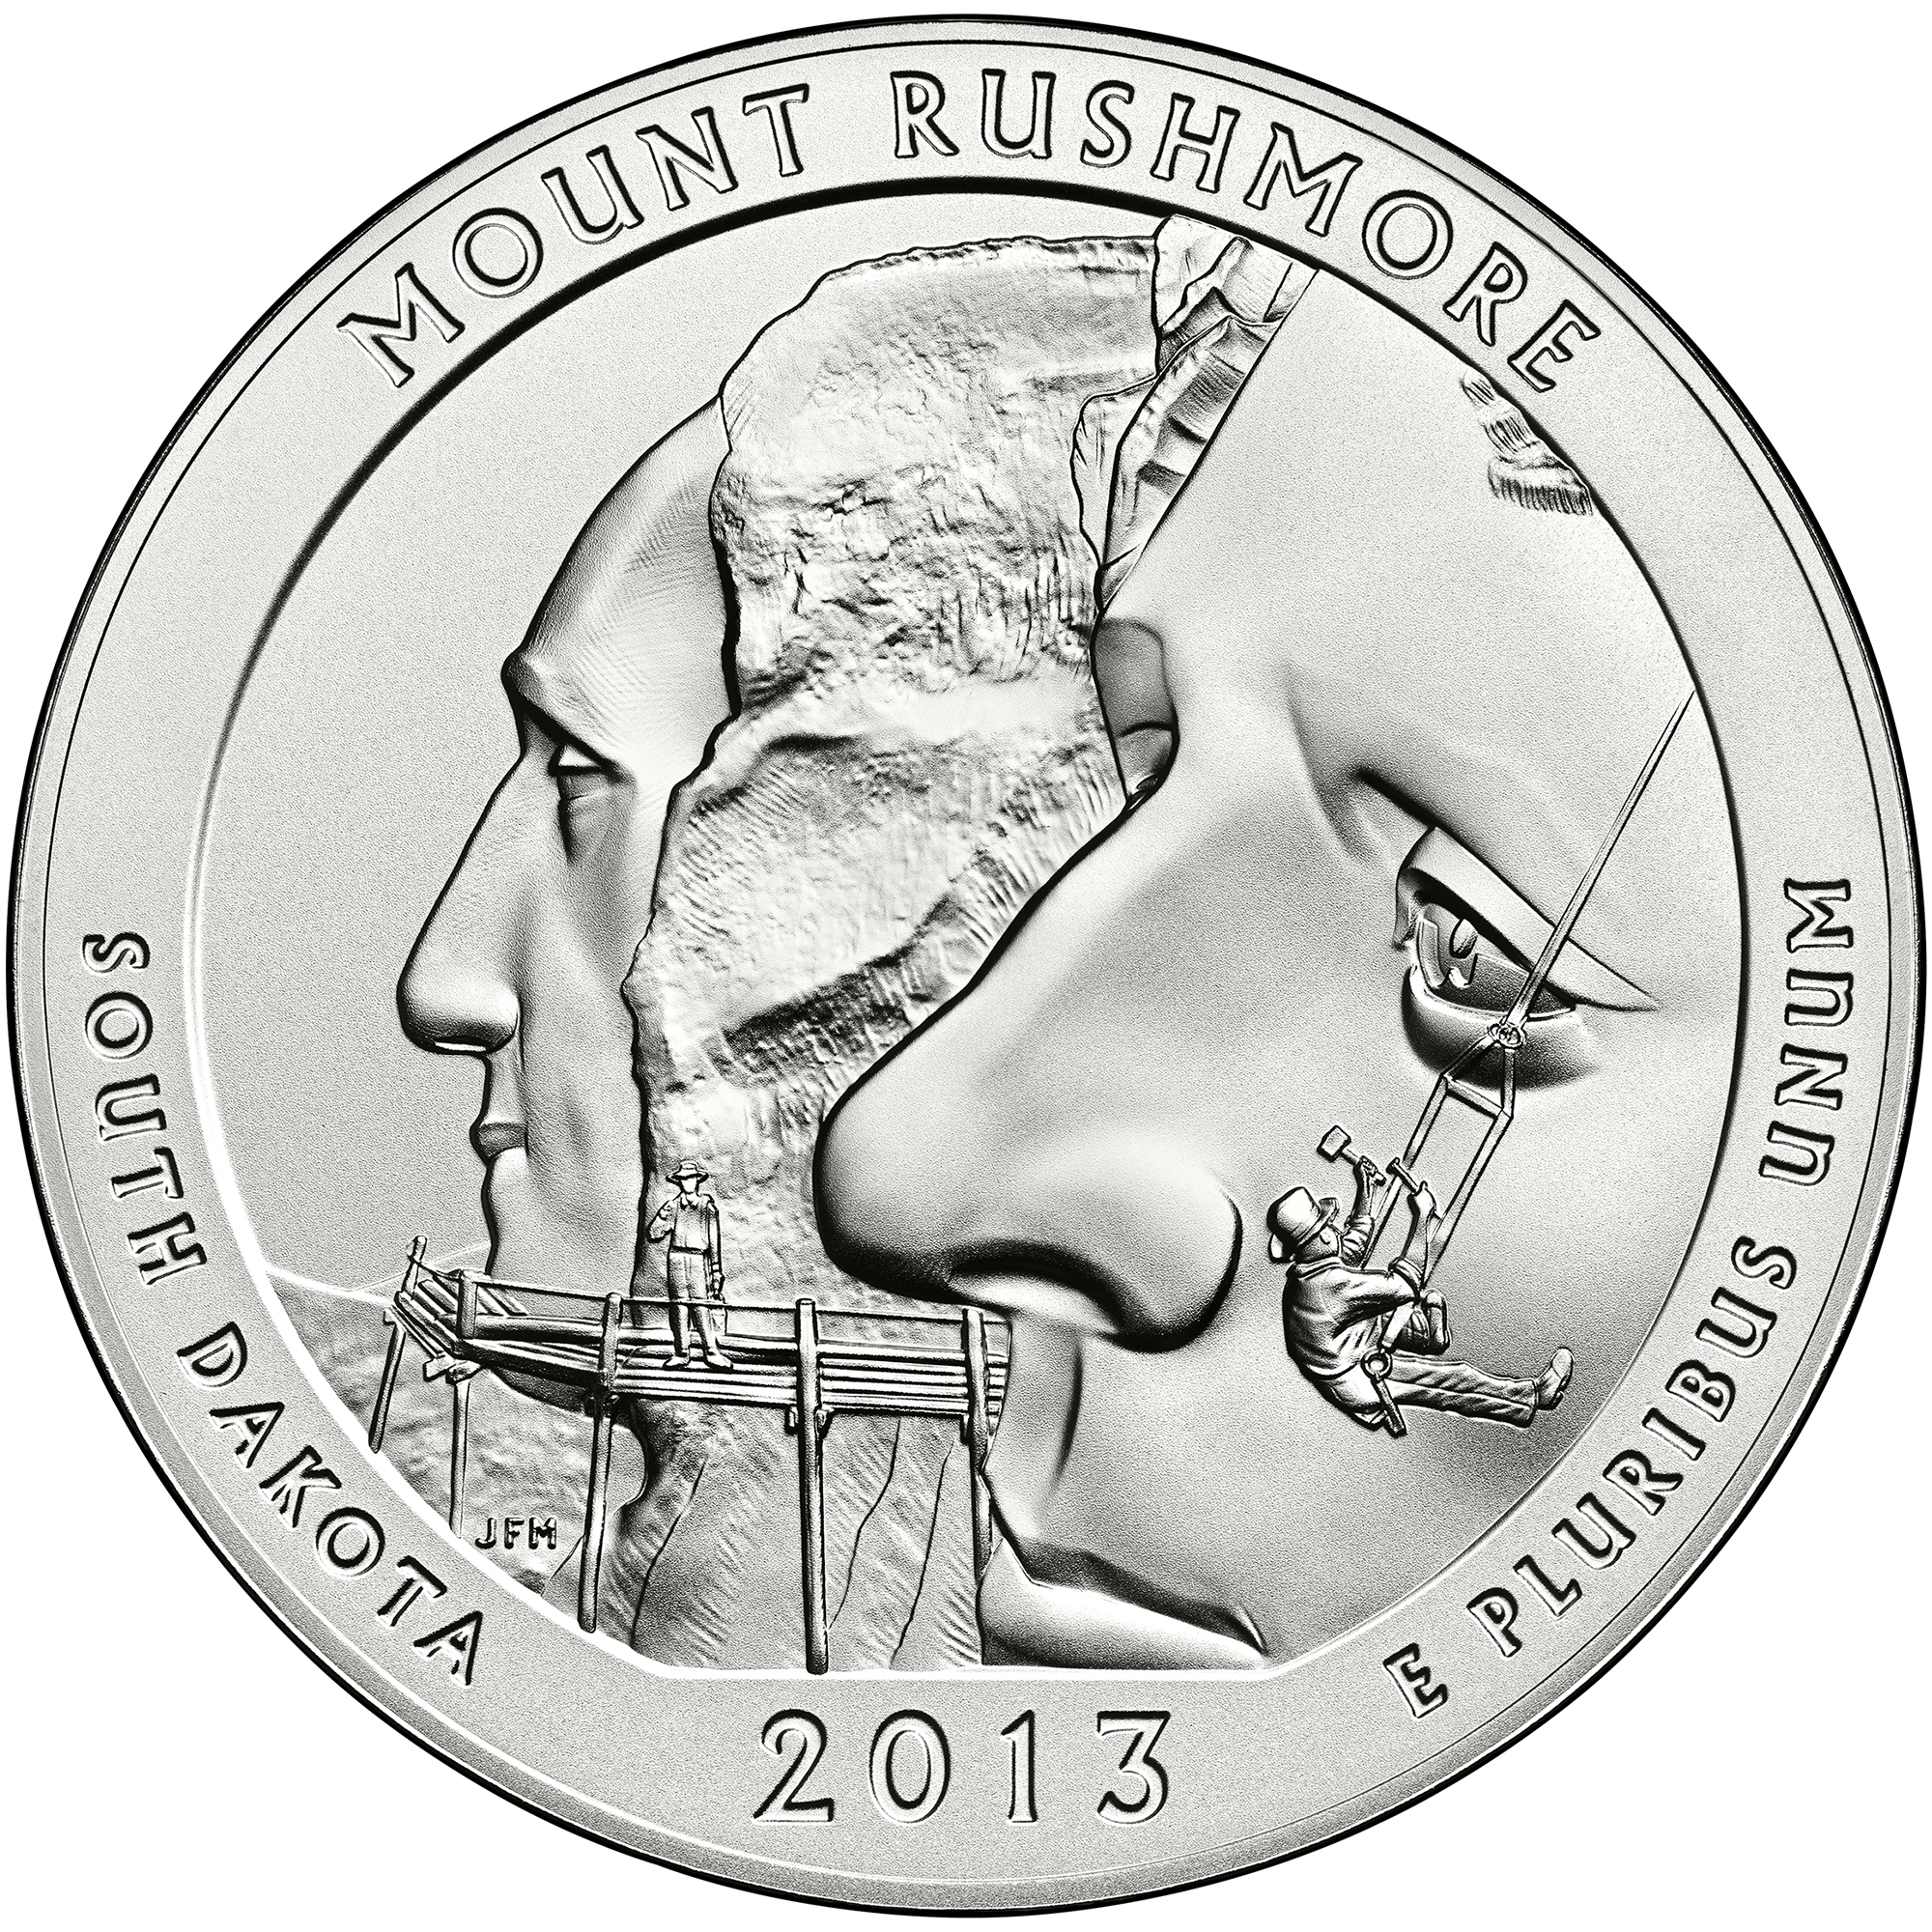 2013 America The Beautiful Quarters Five Ounce Silver Uncirculated Coin Mount Rushmore South Dakota Reverse